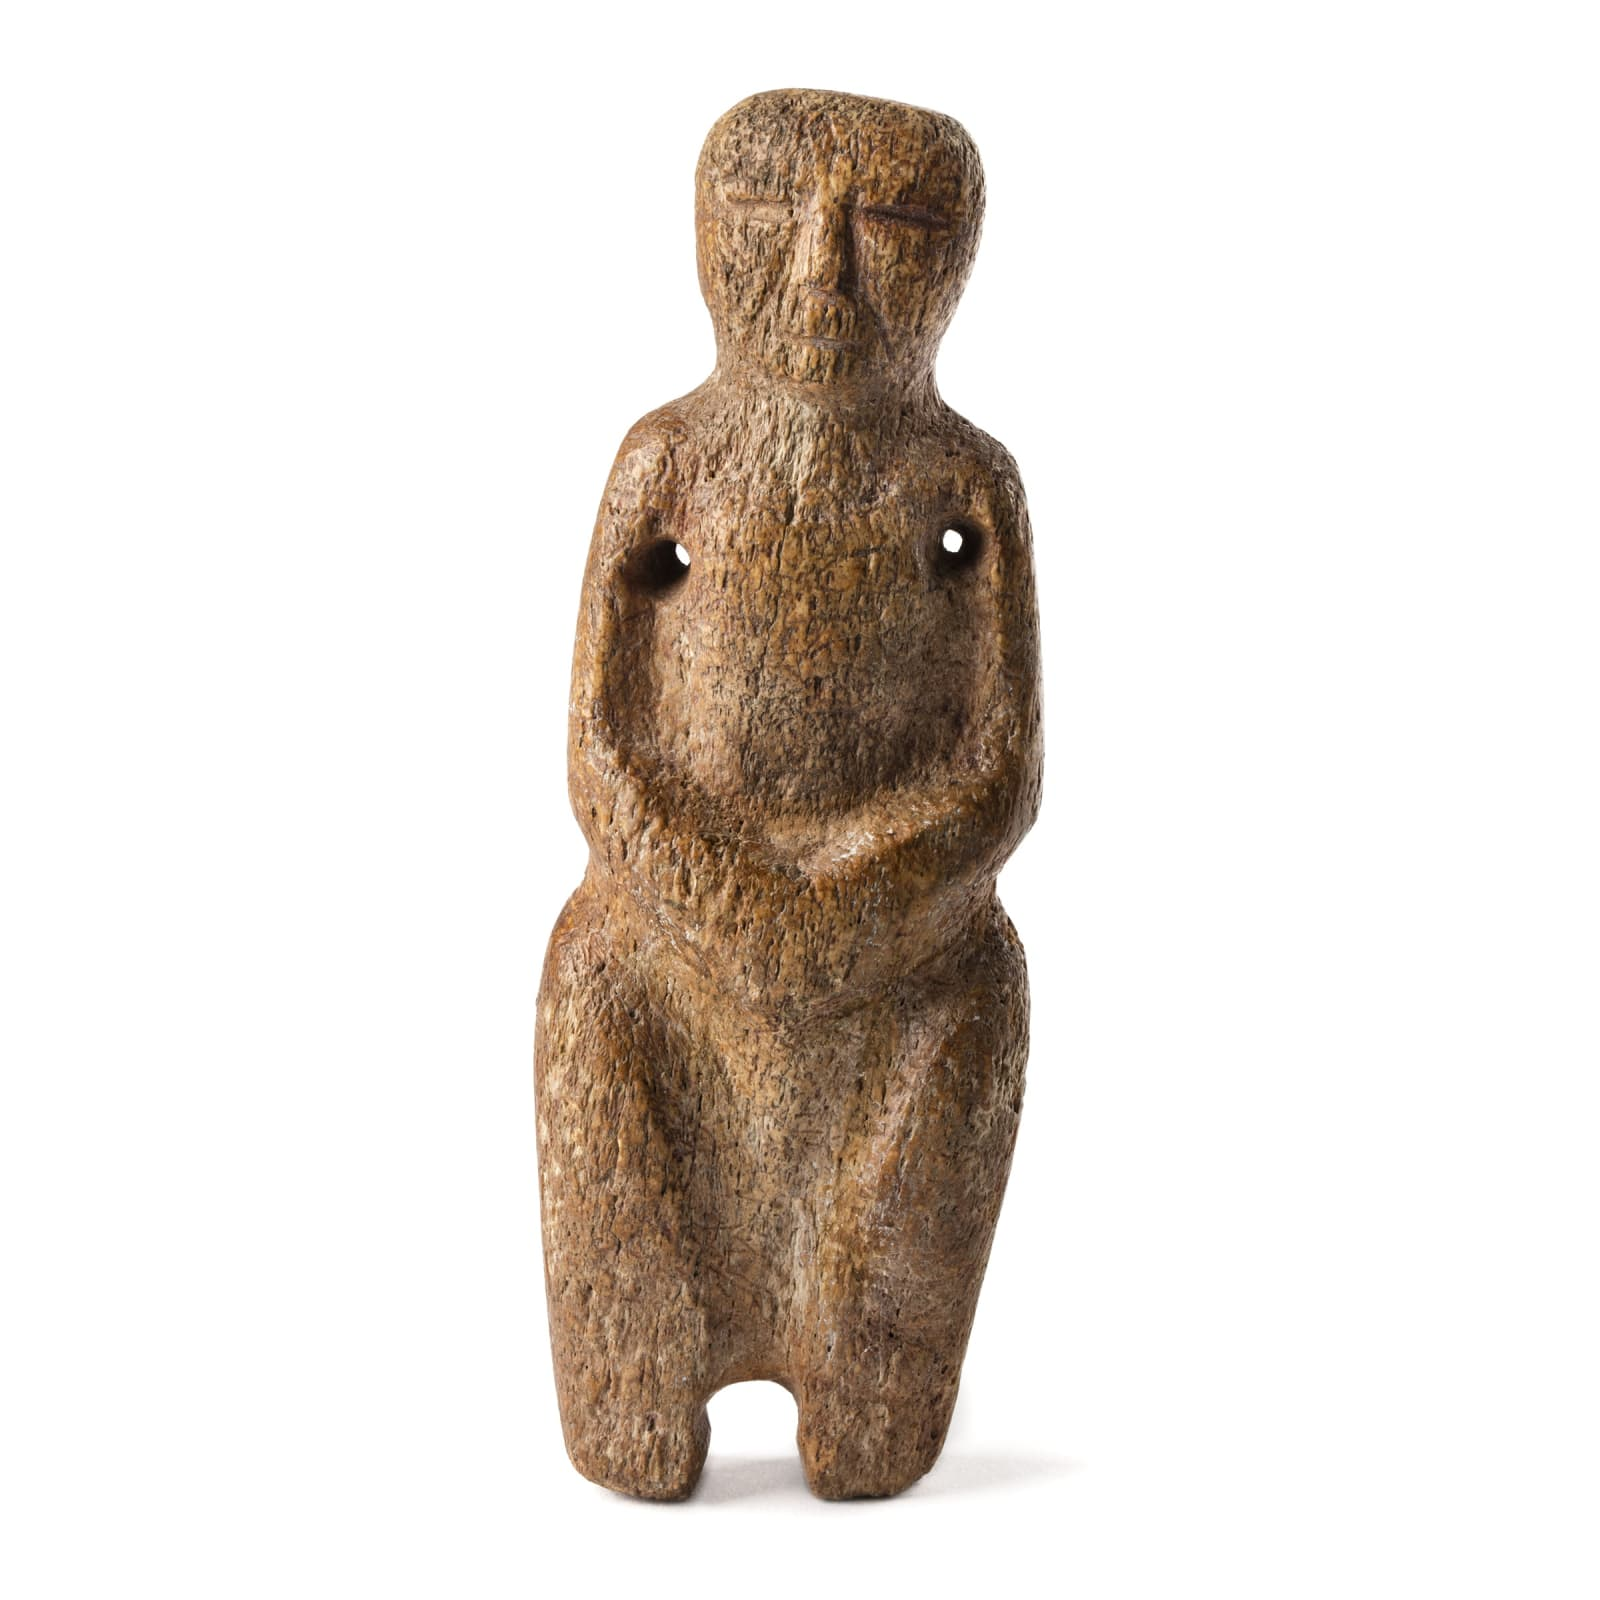 Possibly Late Punuk or Thule Culture, Alaska or Canada Standing Female Figure, 1000-1400 A.D. REALIZED: $5,520